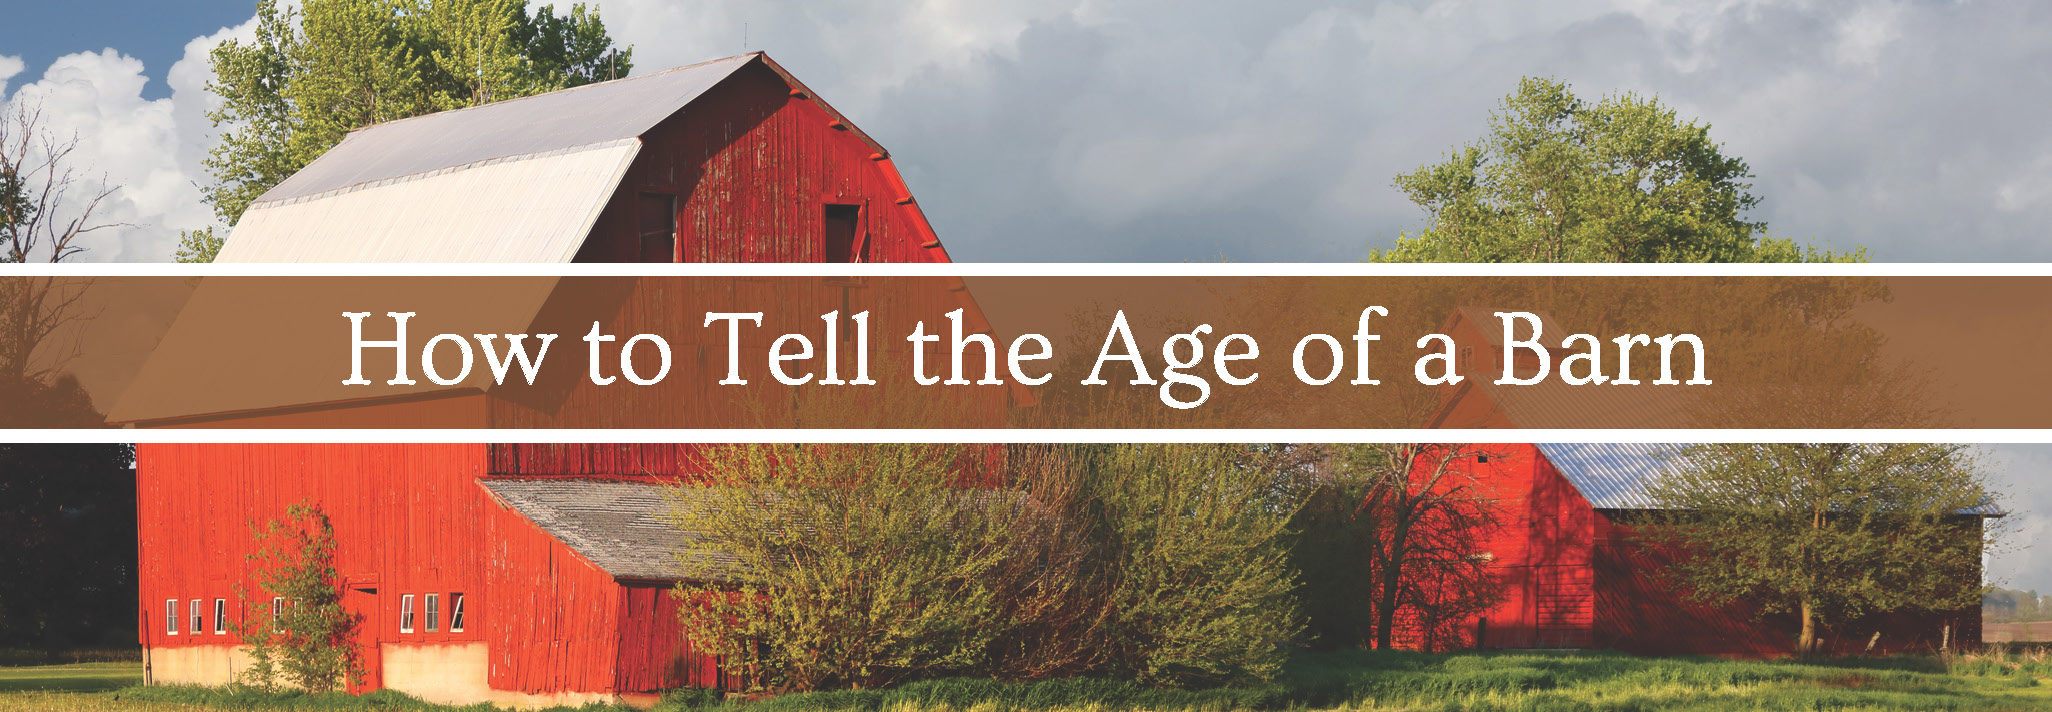 How to tell the age of a Barn